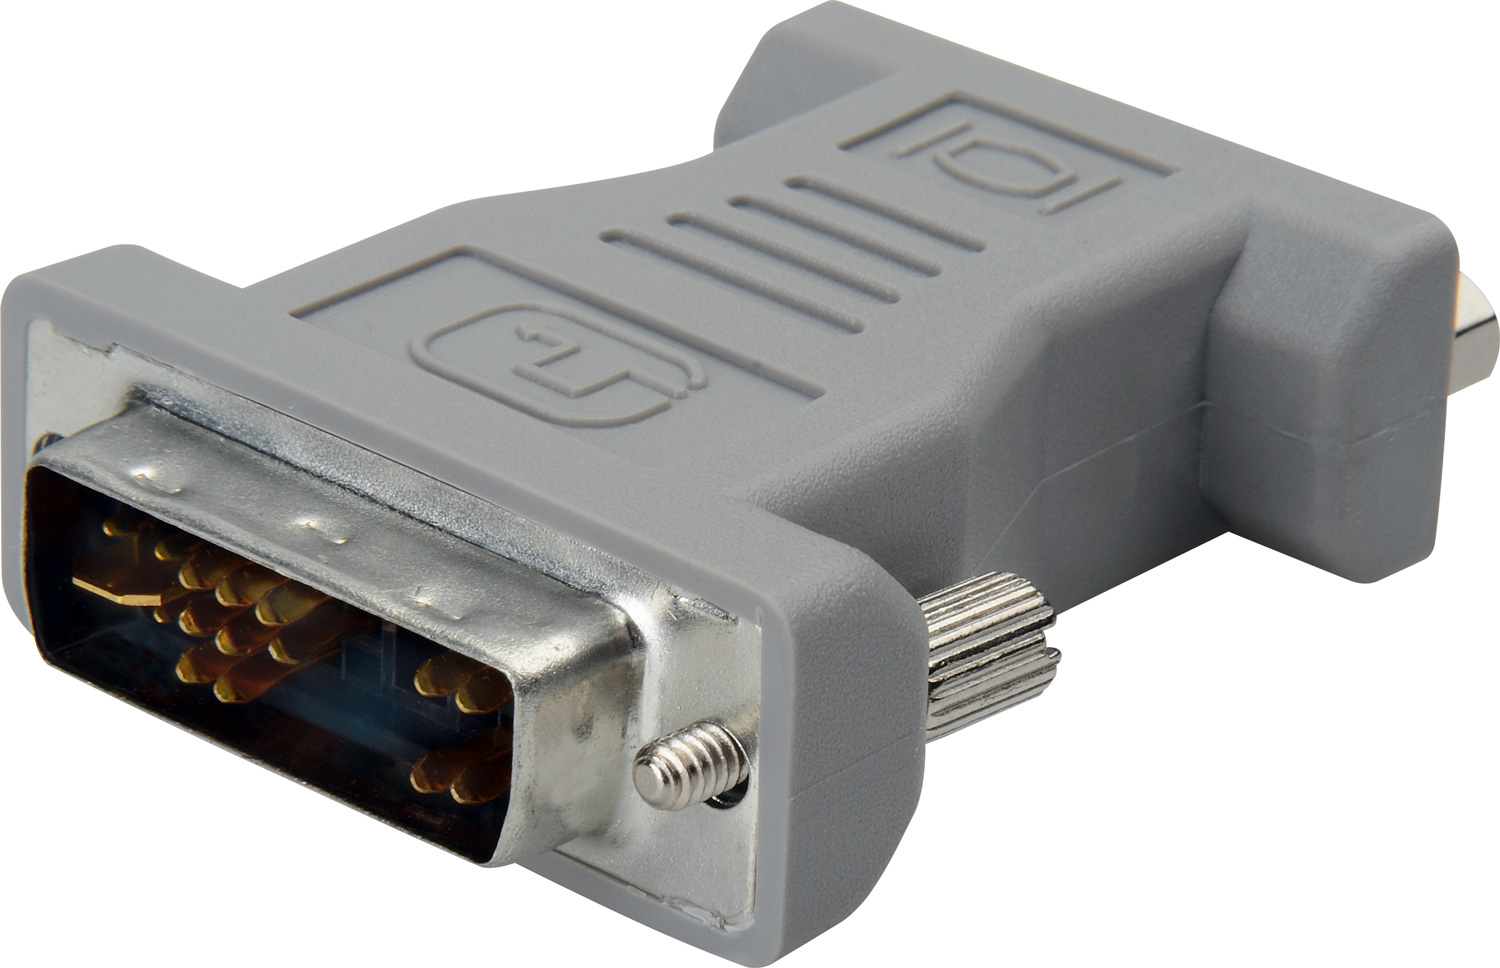 Connectronics Dvi A Male To Vga Female Adapter